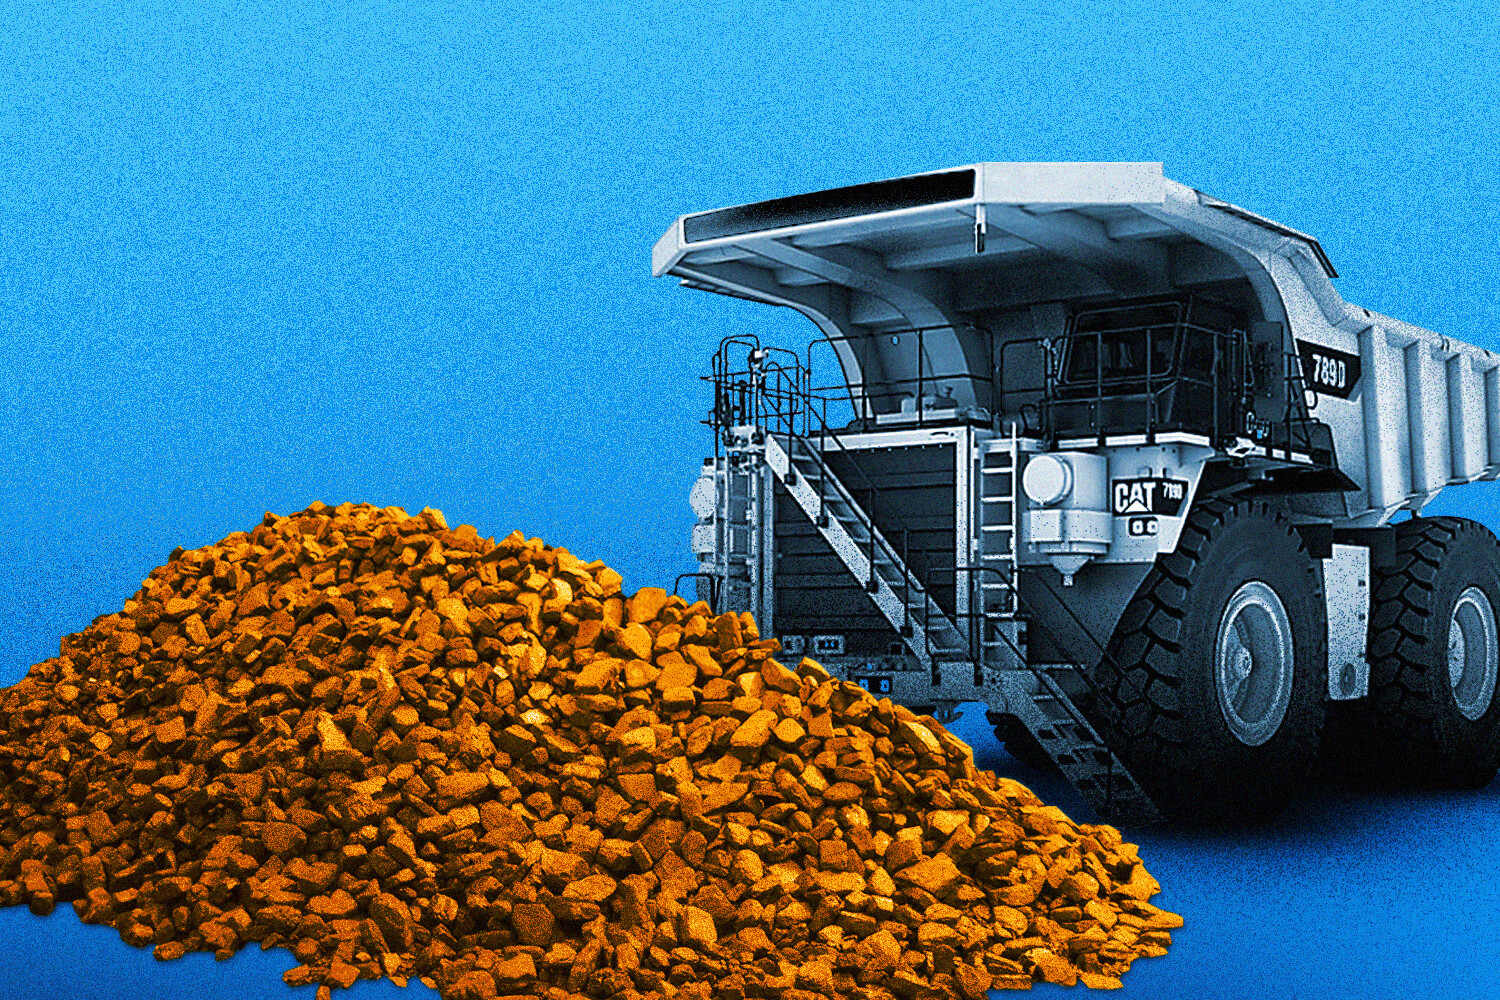 pile of rare earth metals and mining dump truck